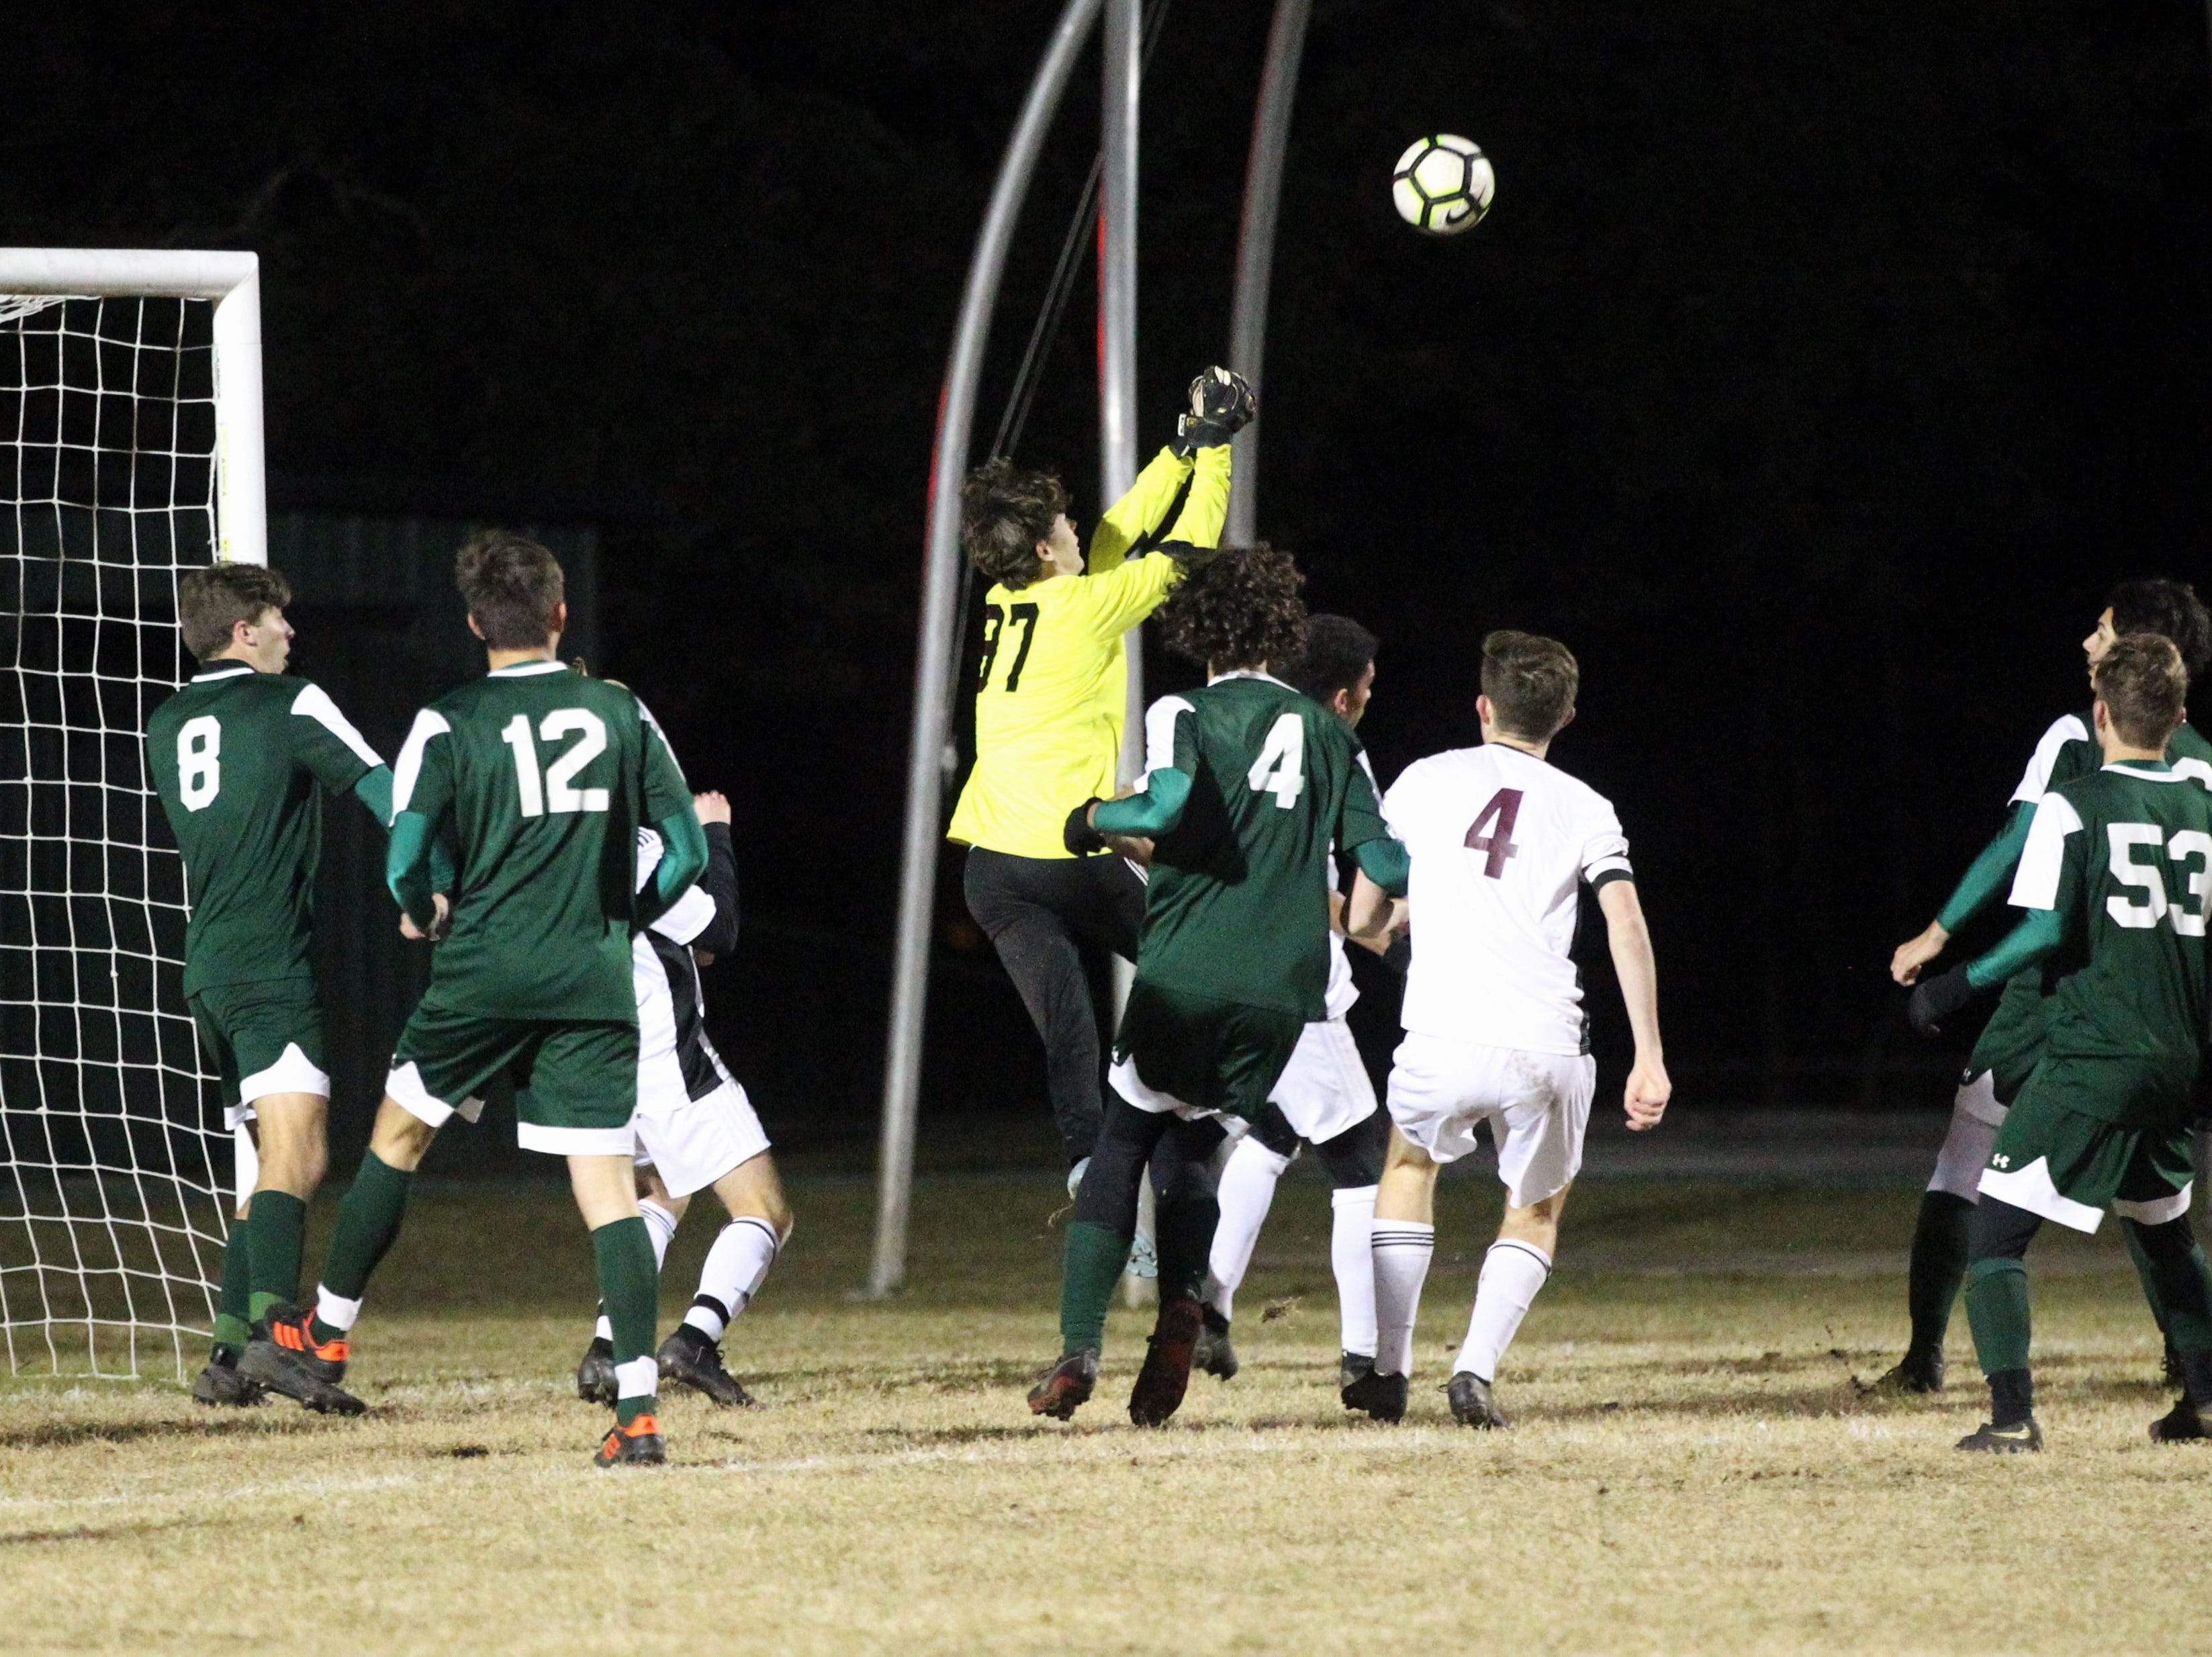 Lincoln keeper Aiden Reiding goes to make a clearance punch as Chiles' boys soccer team beat Lincoln 1-0 in a District 2-4A semifinal on Jan. 30, 2019.